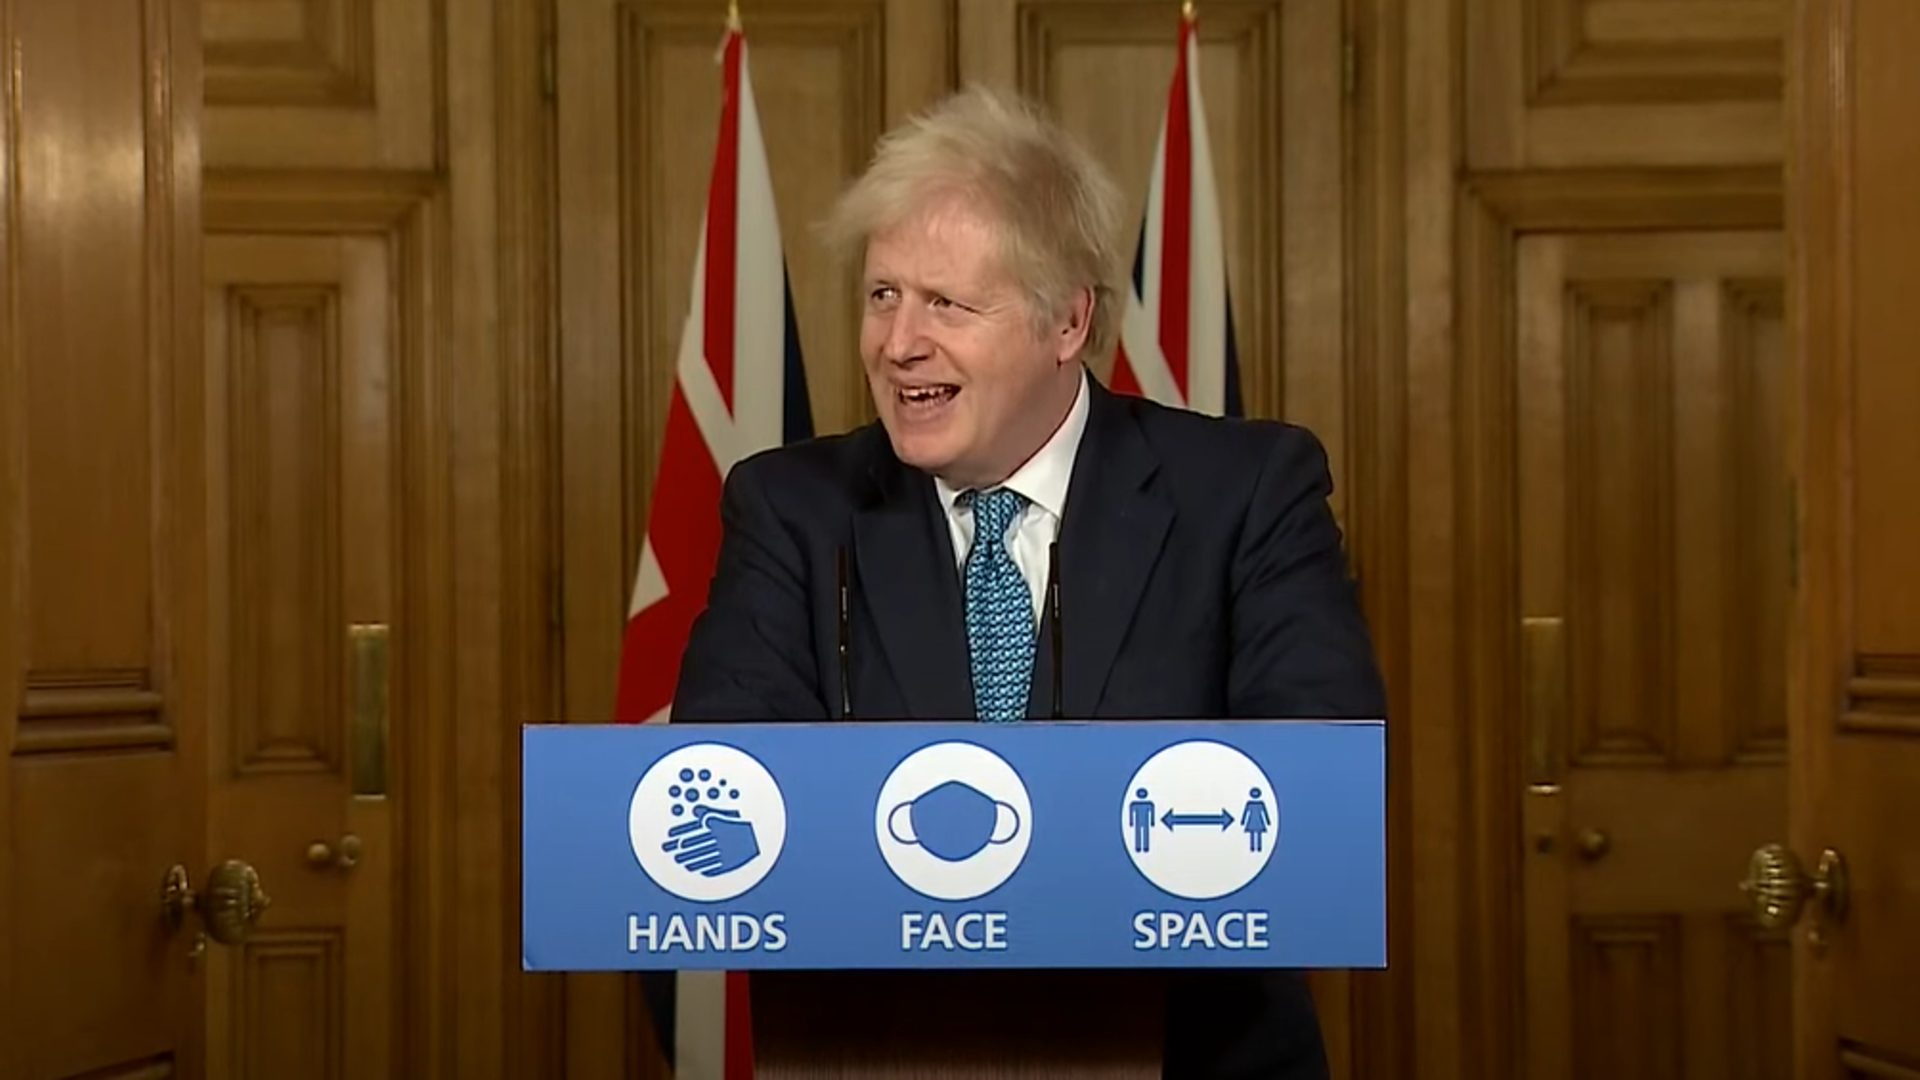 Boris Johnson laughs when asked if UK will get a Brexit deal - Credit: YouTube